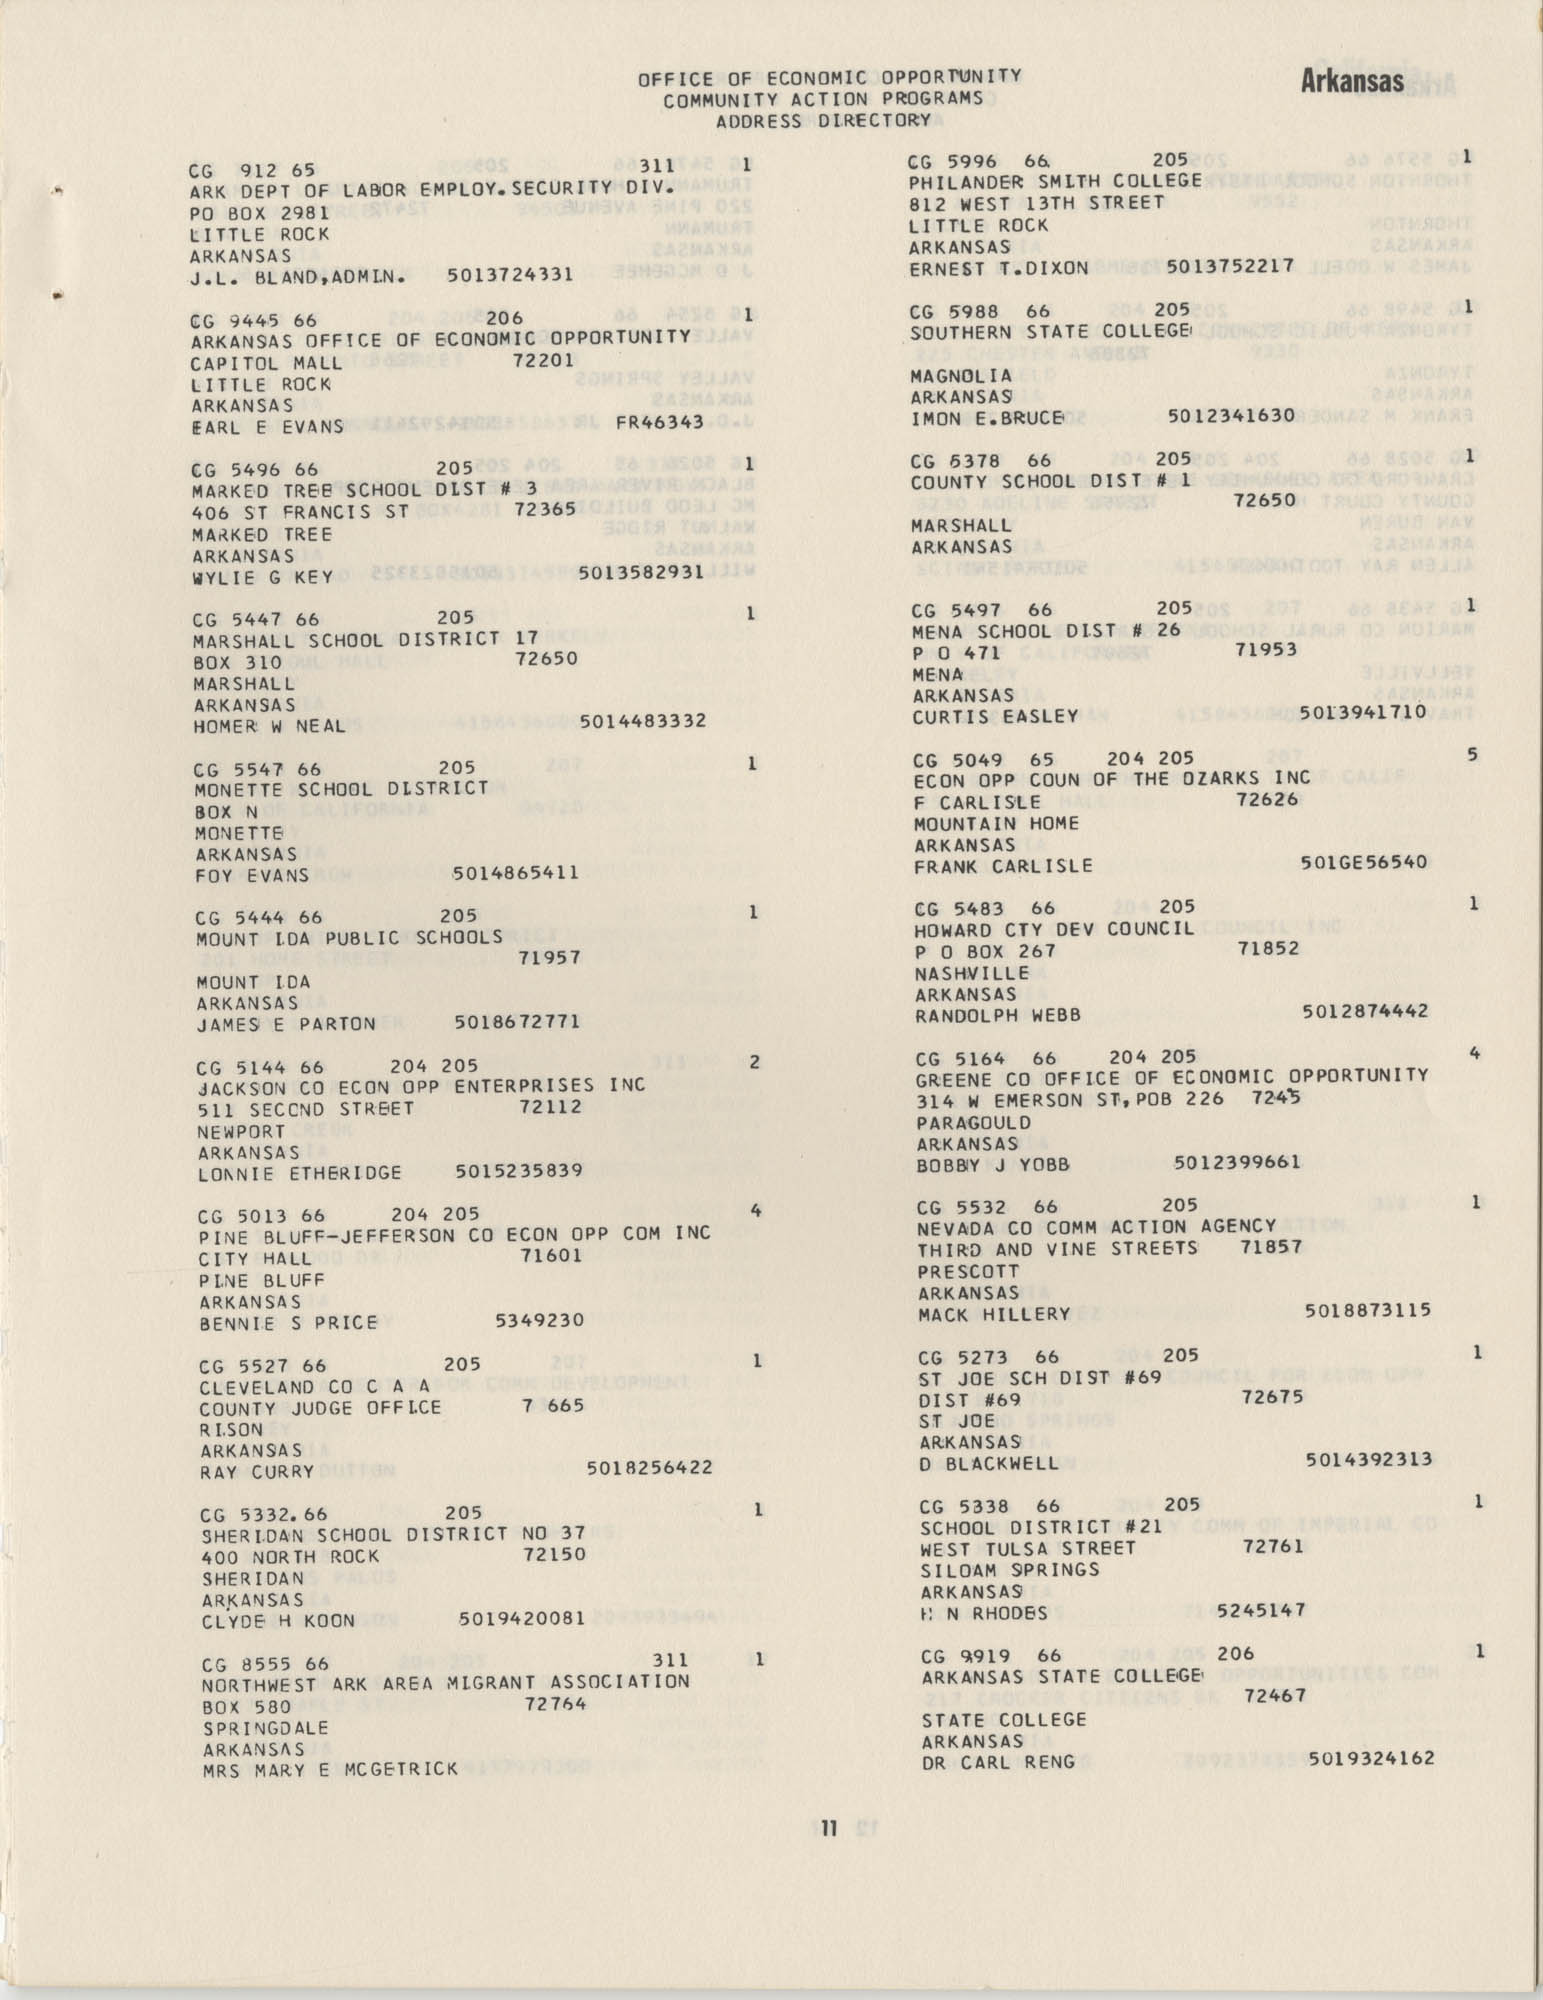 Community Action Programs Directory, June 15, 1966, Page 11